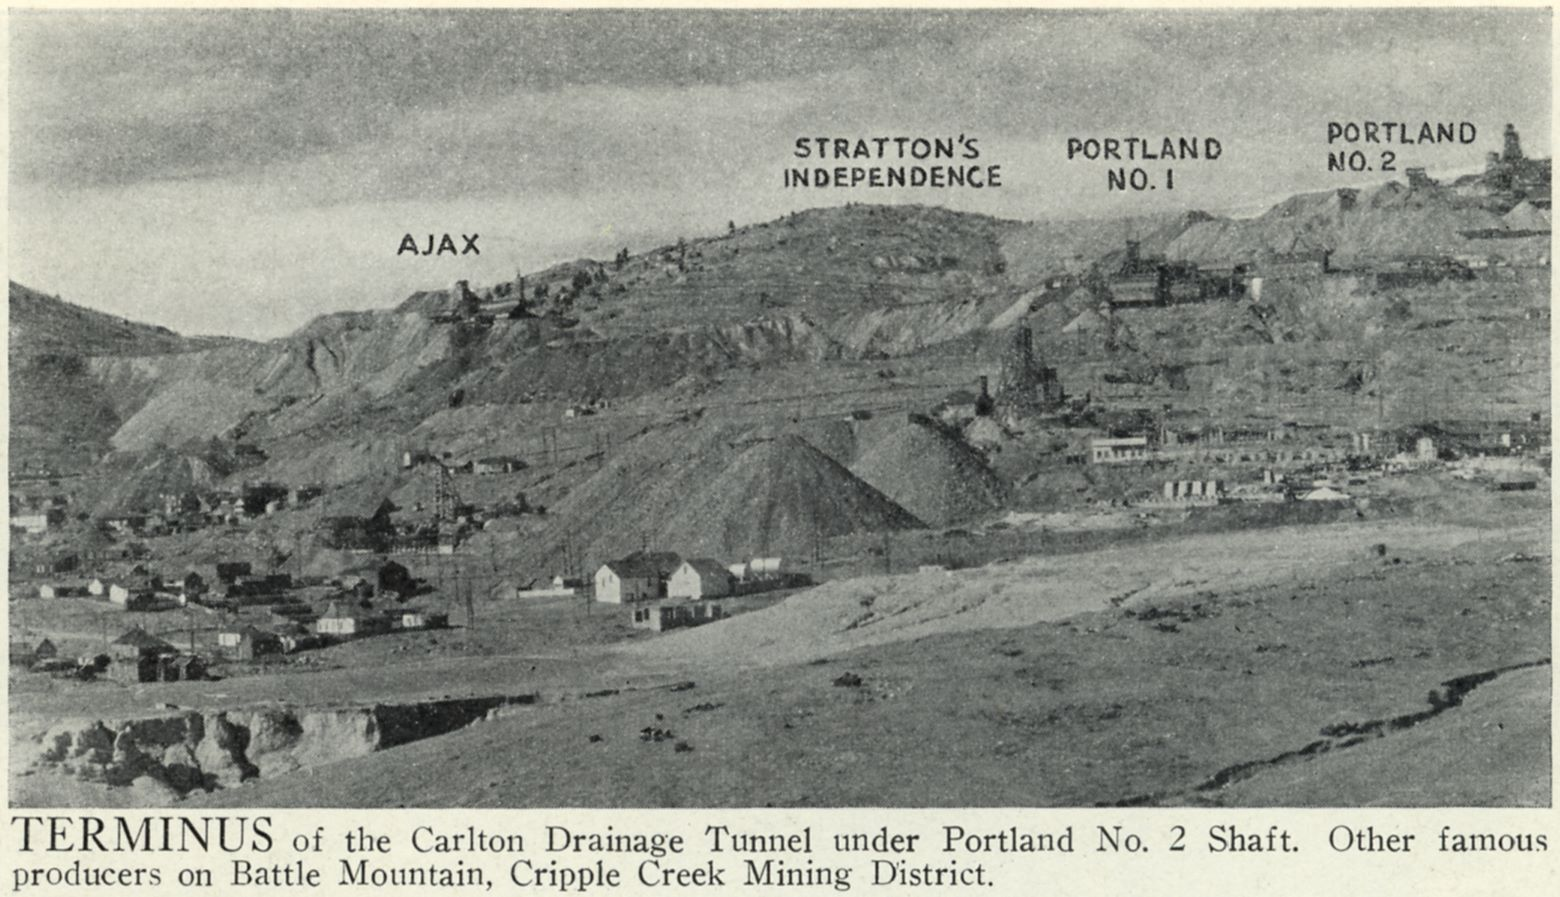 This is an overview of some of the famous mines, making Victor, Colorado, ''The City of Mines''.    Battle Mountain where some of the mines are nicely marked out. The strong Mine is seen just below middle top/down and just left of the Word ''AJAX'' on the left side of this view. The Independence is see sort of in the foreground with massive dump piles extending towards the photographer, while the Portland mines dumps fill the upper part of Battle Mountain on the top right part of the view.    Town of Victor is partly seen in lower left, while the Ajax Mine is nicely marked out but still hiding behind some pretty massive big dumps on the upper left part of this view.